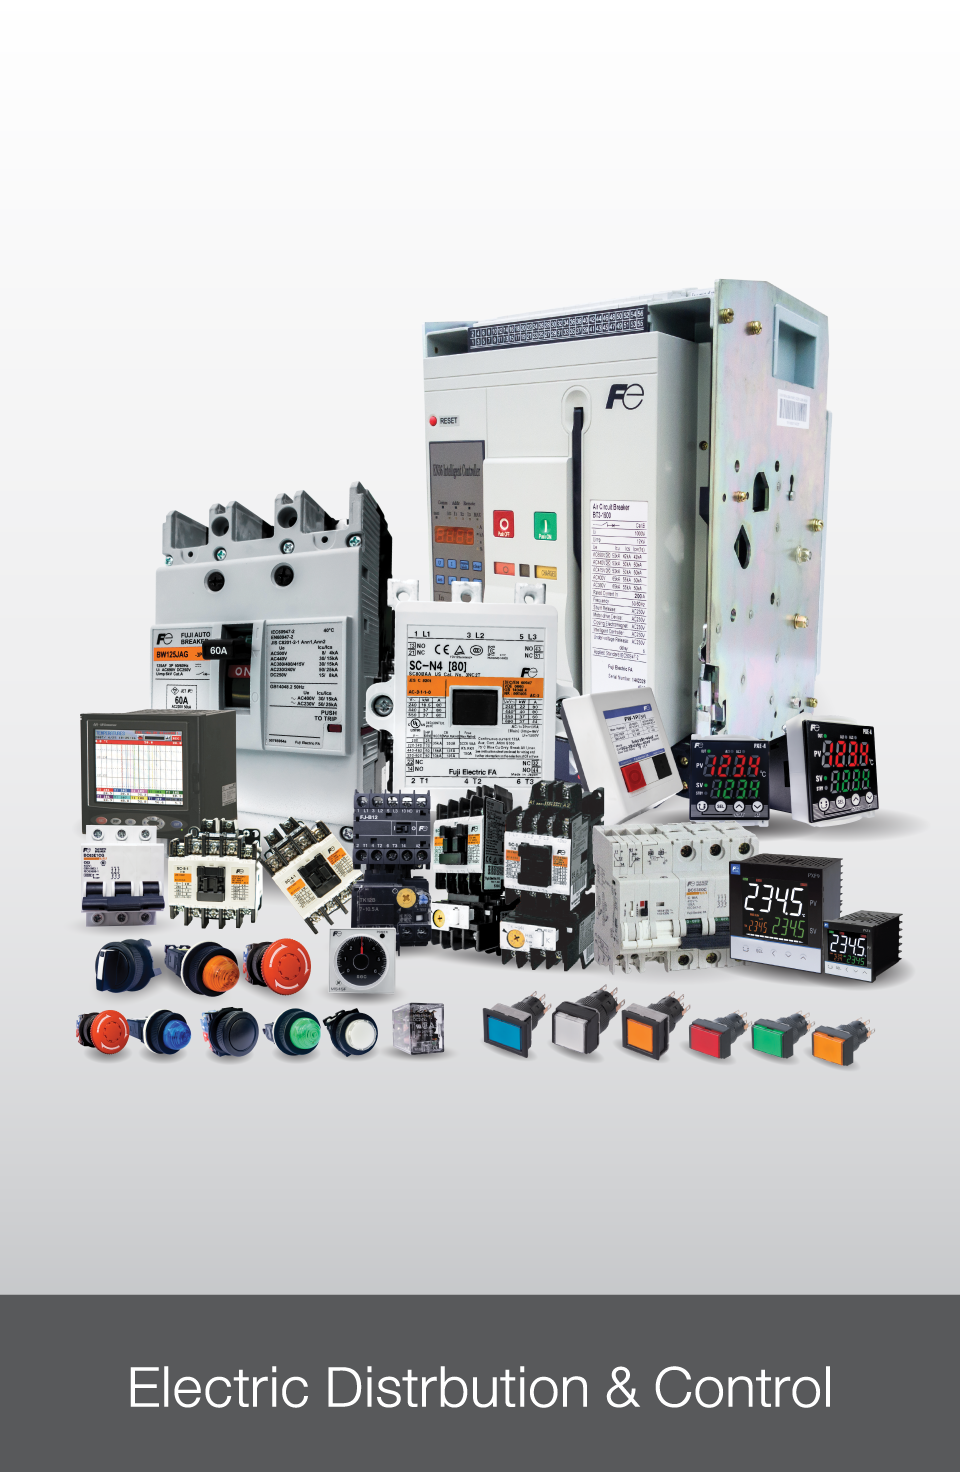 Electrical Distribution and Control Division